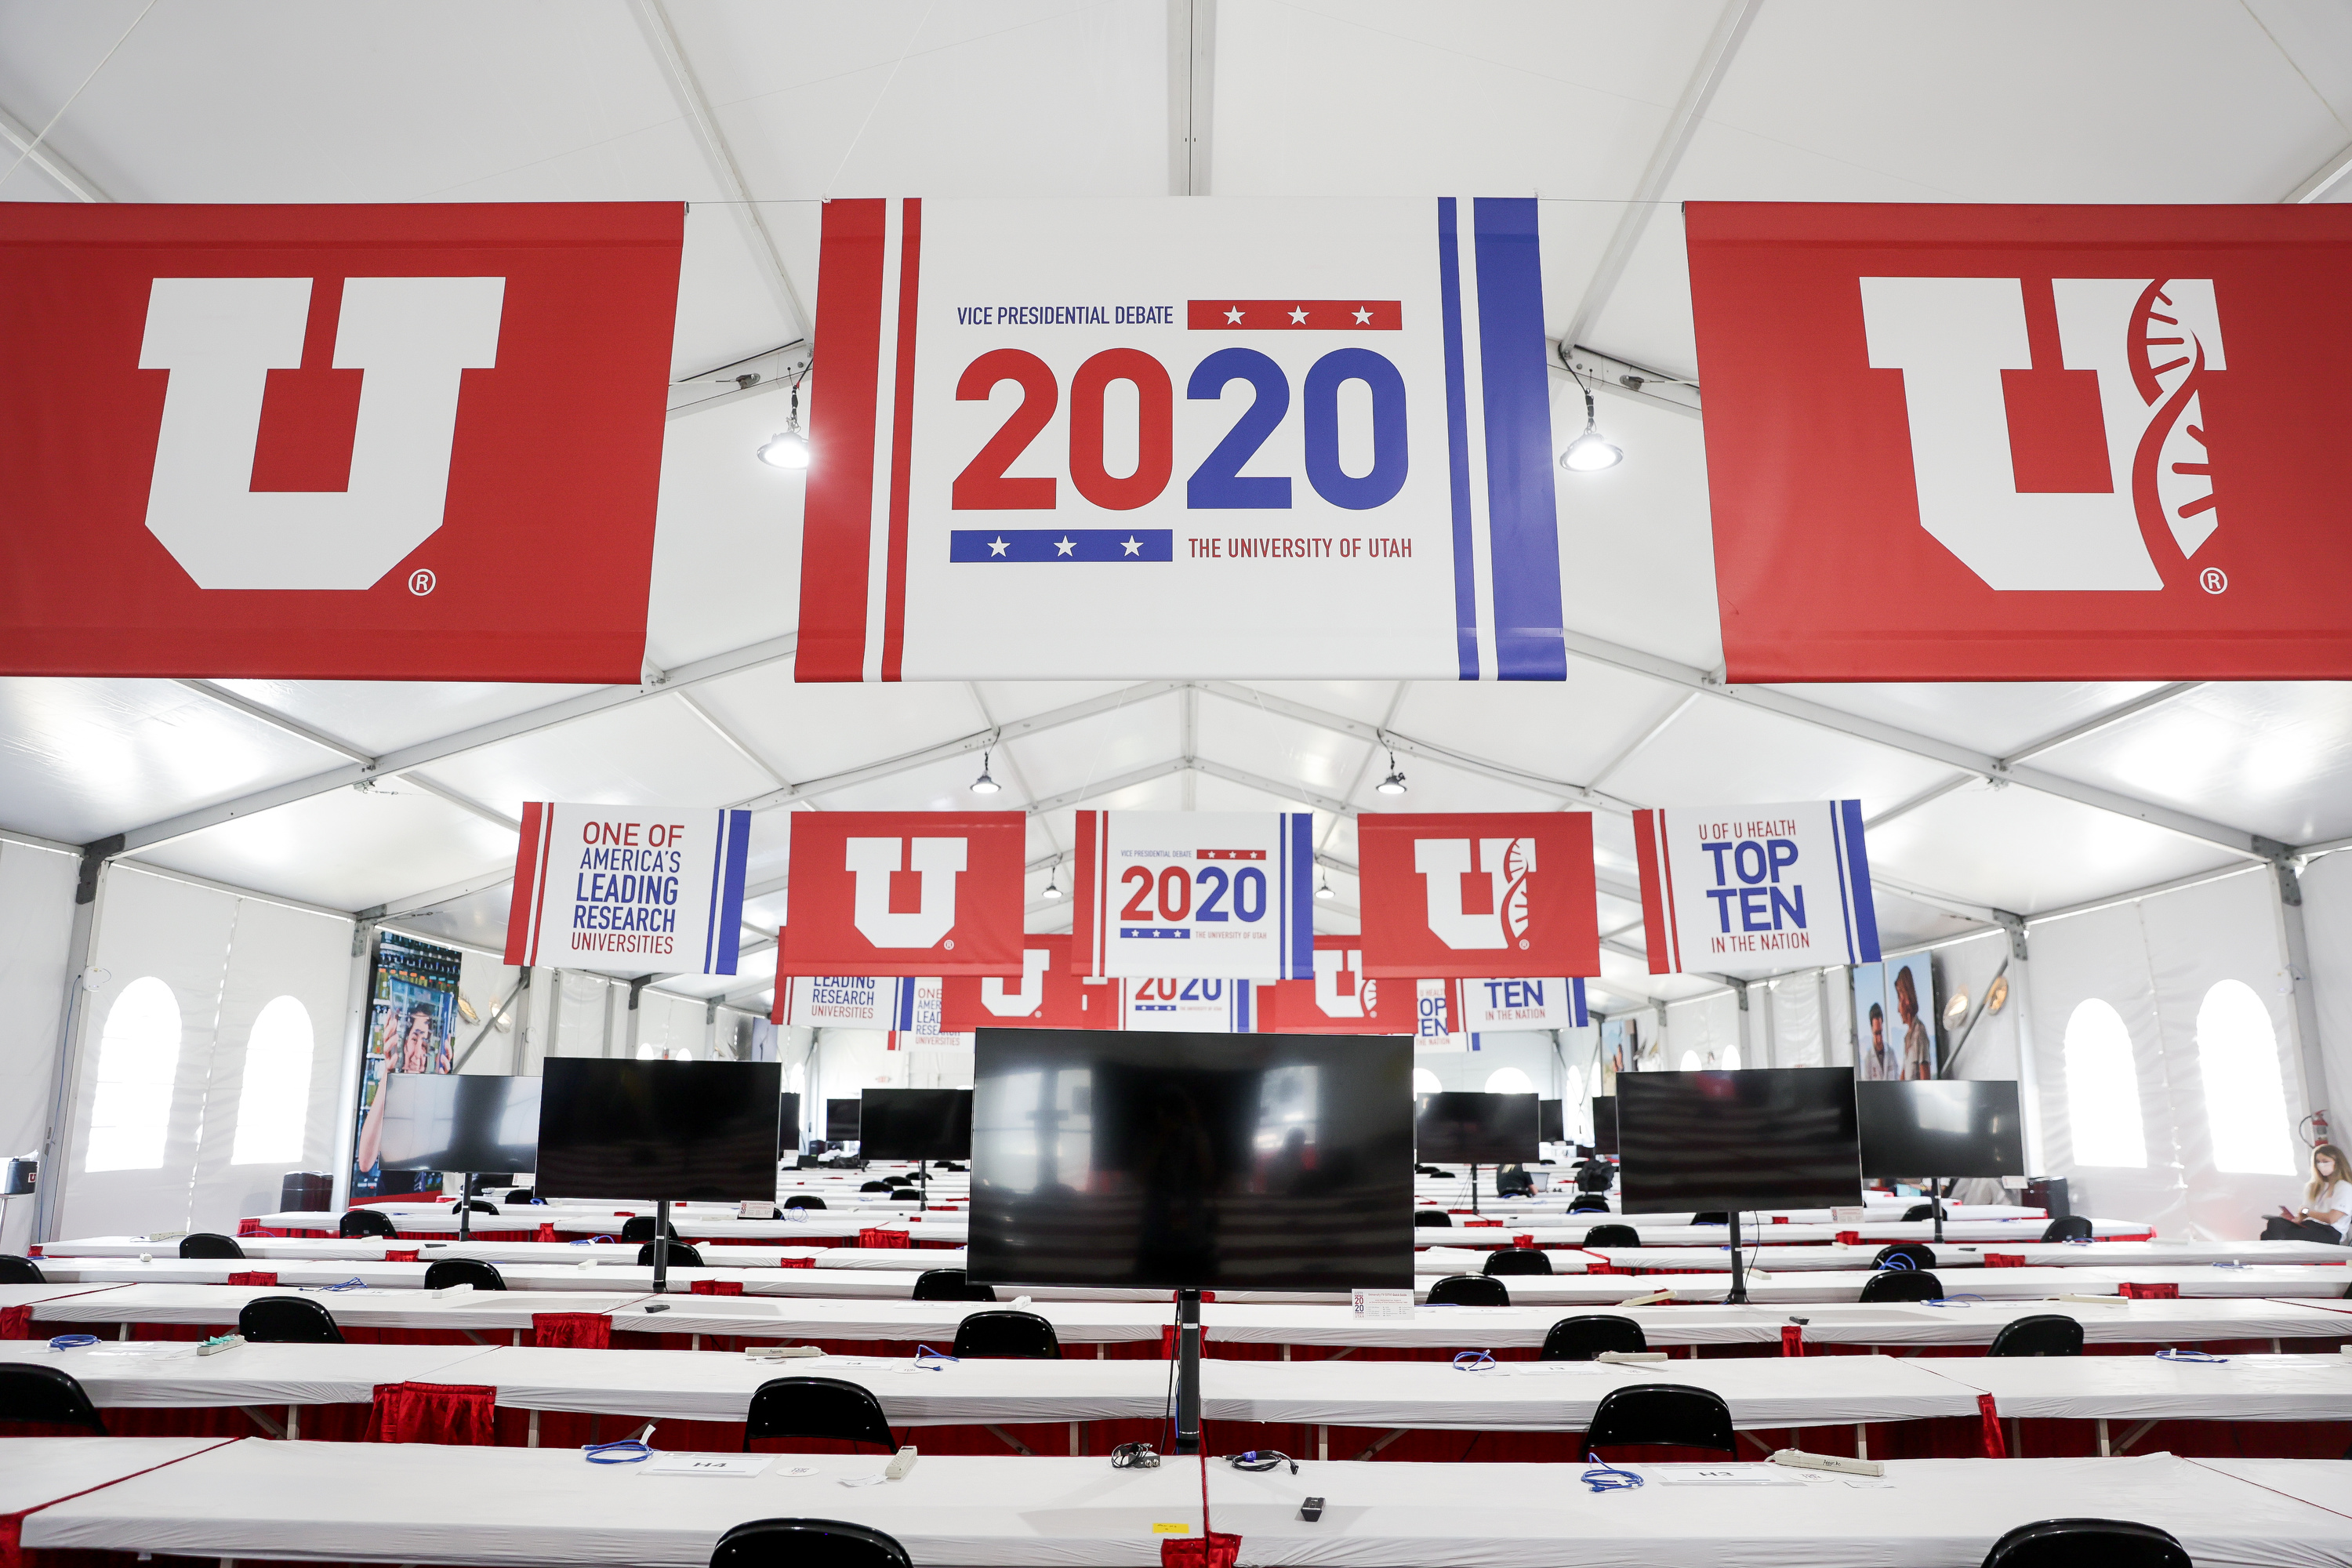 A sprawling media tent outside of Kingsbury Hall at the University of Utah in Salt Lake City is pictured on Tuesday, Oct. 6, 2020, in preparation for Wednesday's vice presidential debate.